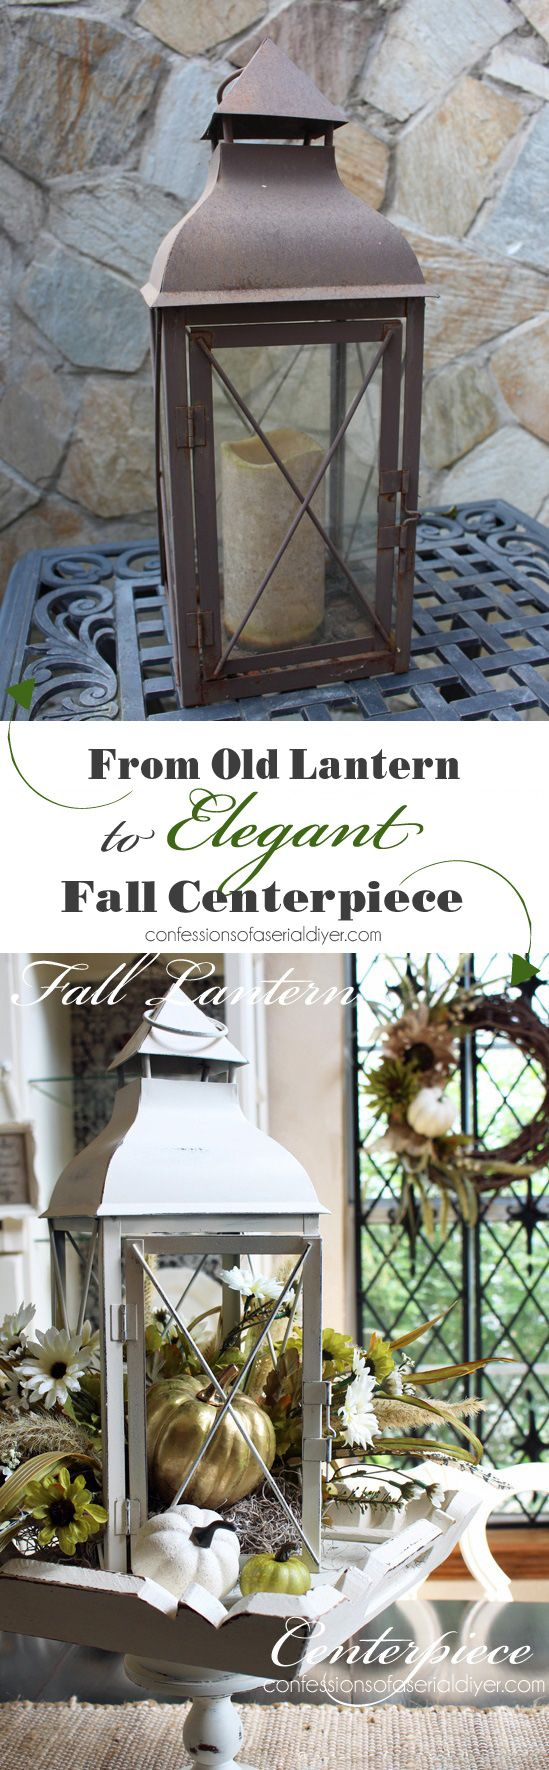 Turn a lantern into an elegant centerpiece for Fall from…